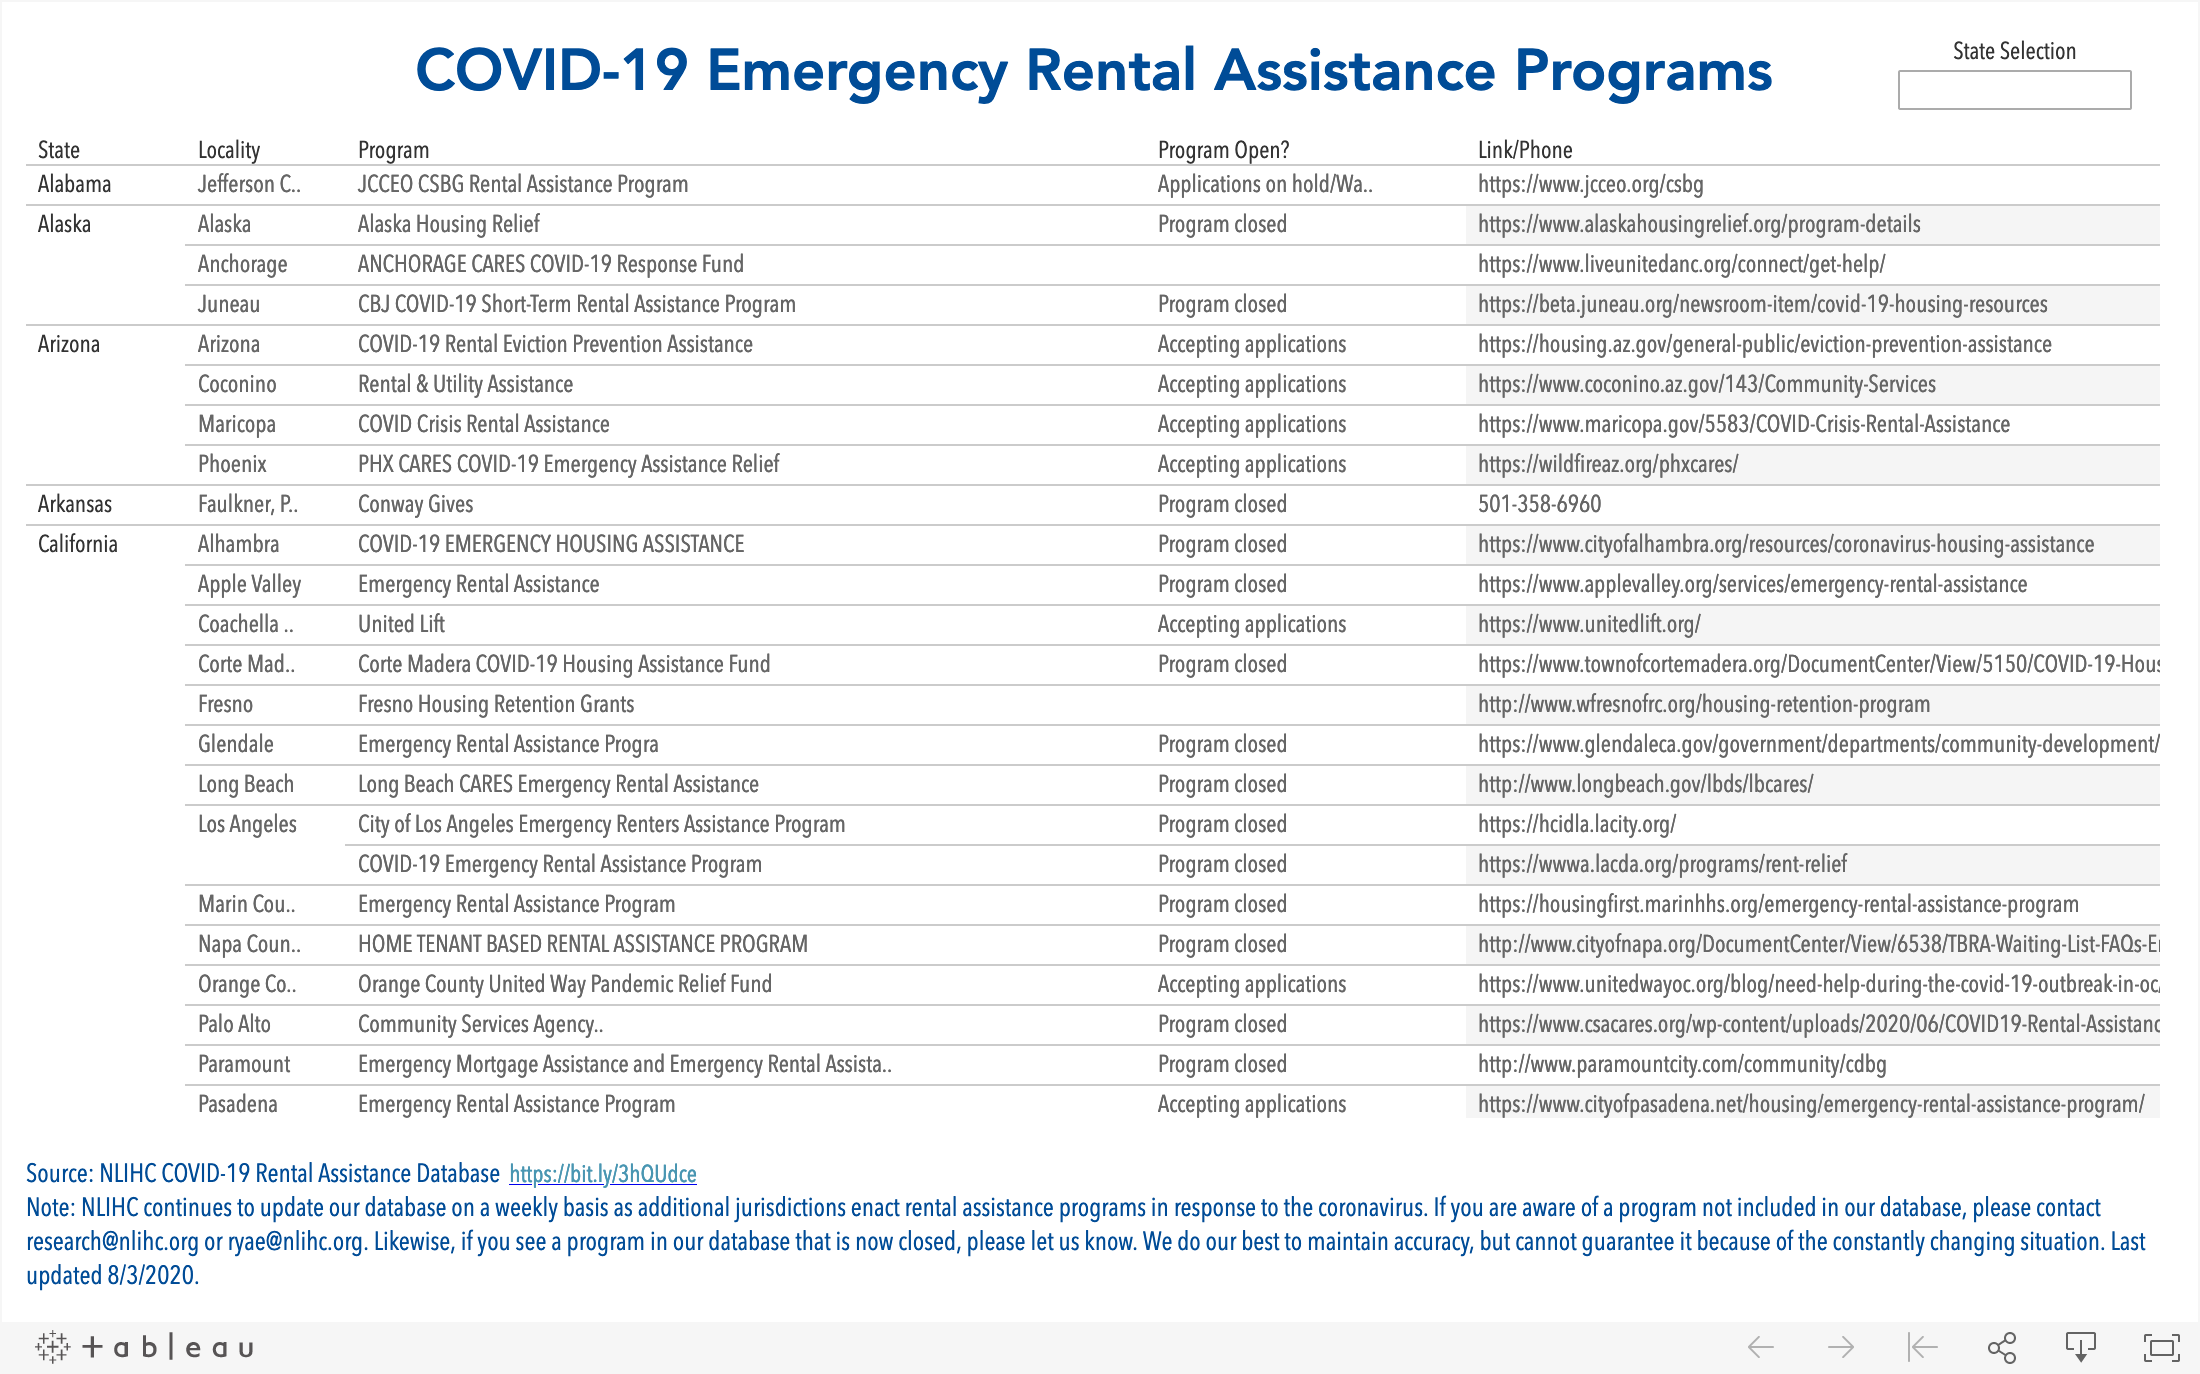 COVID-19_Emergency-RA-programs_Table.png